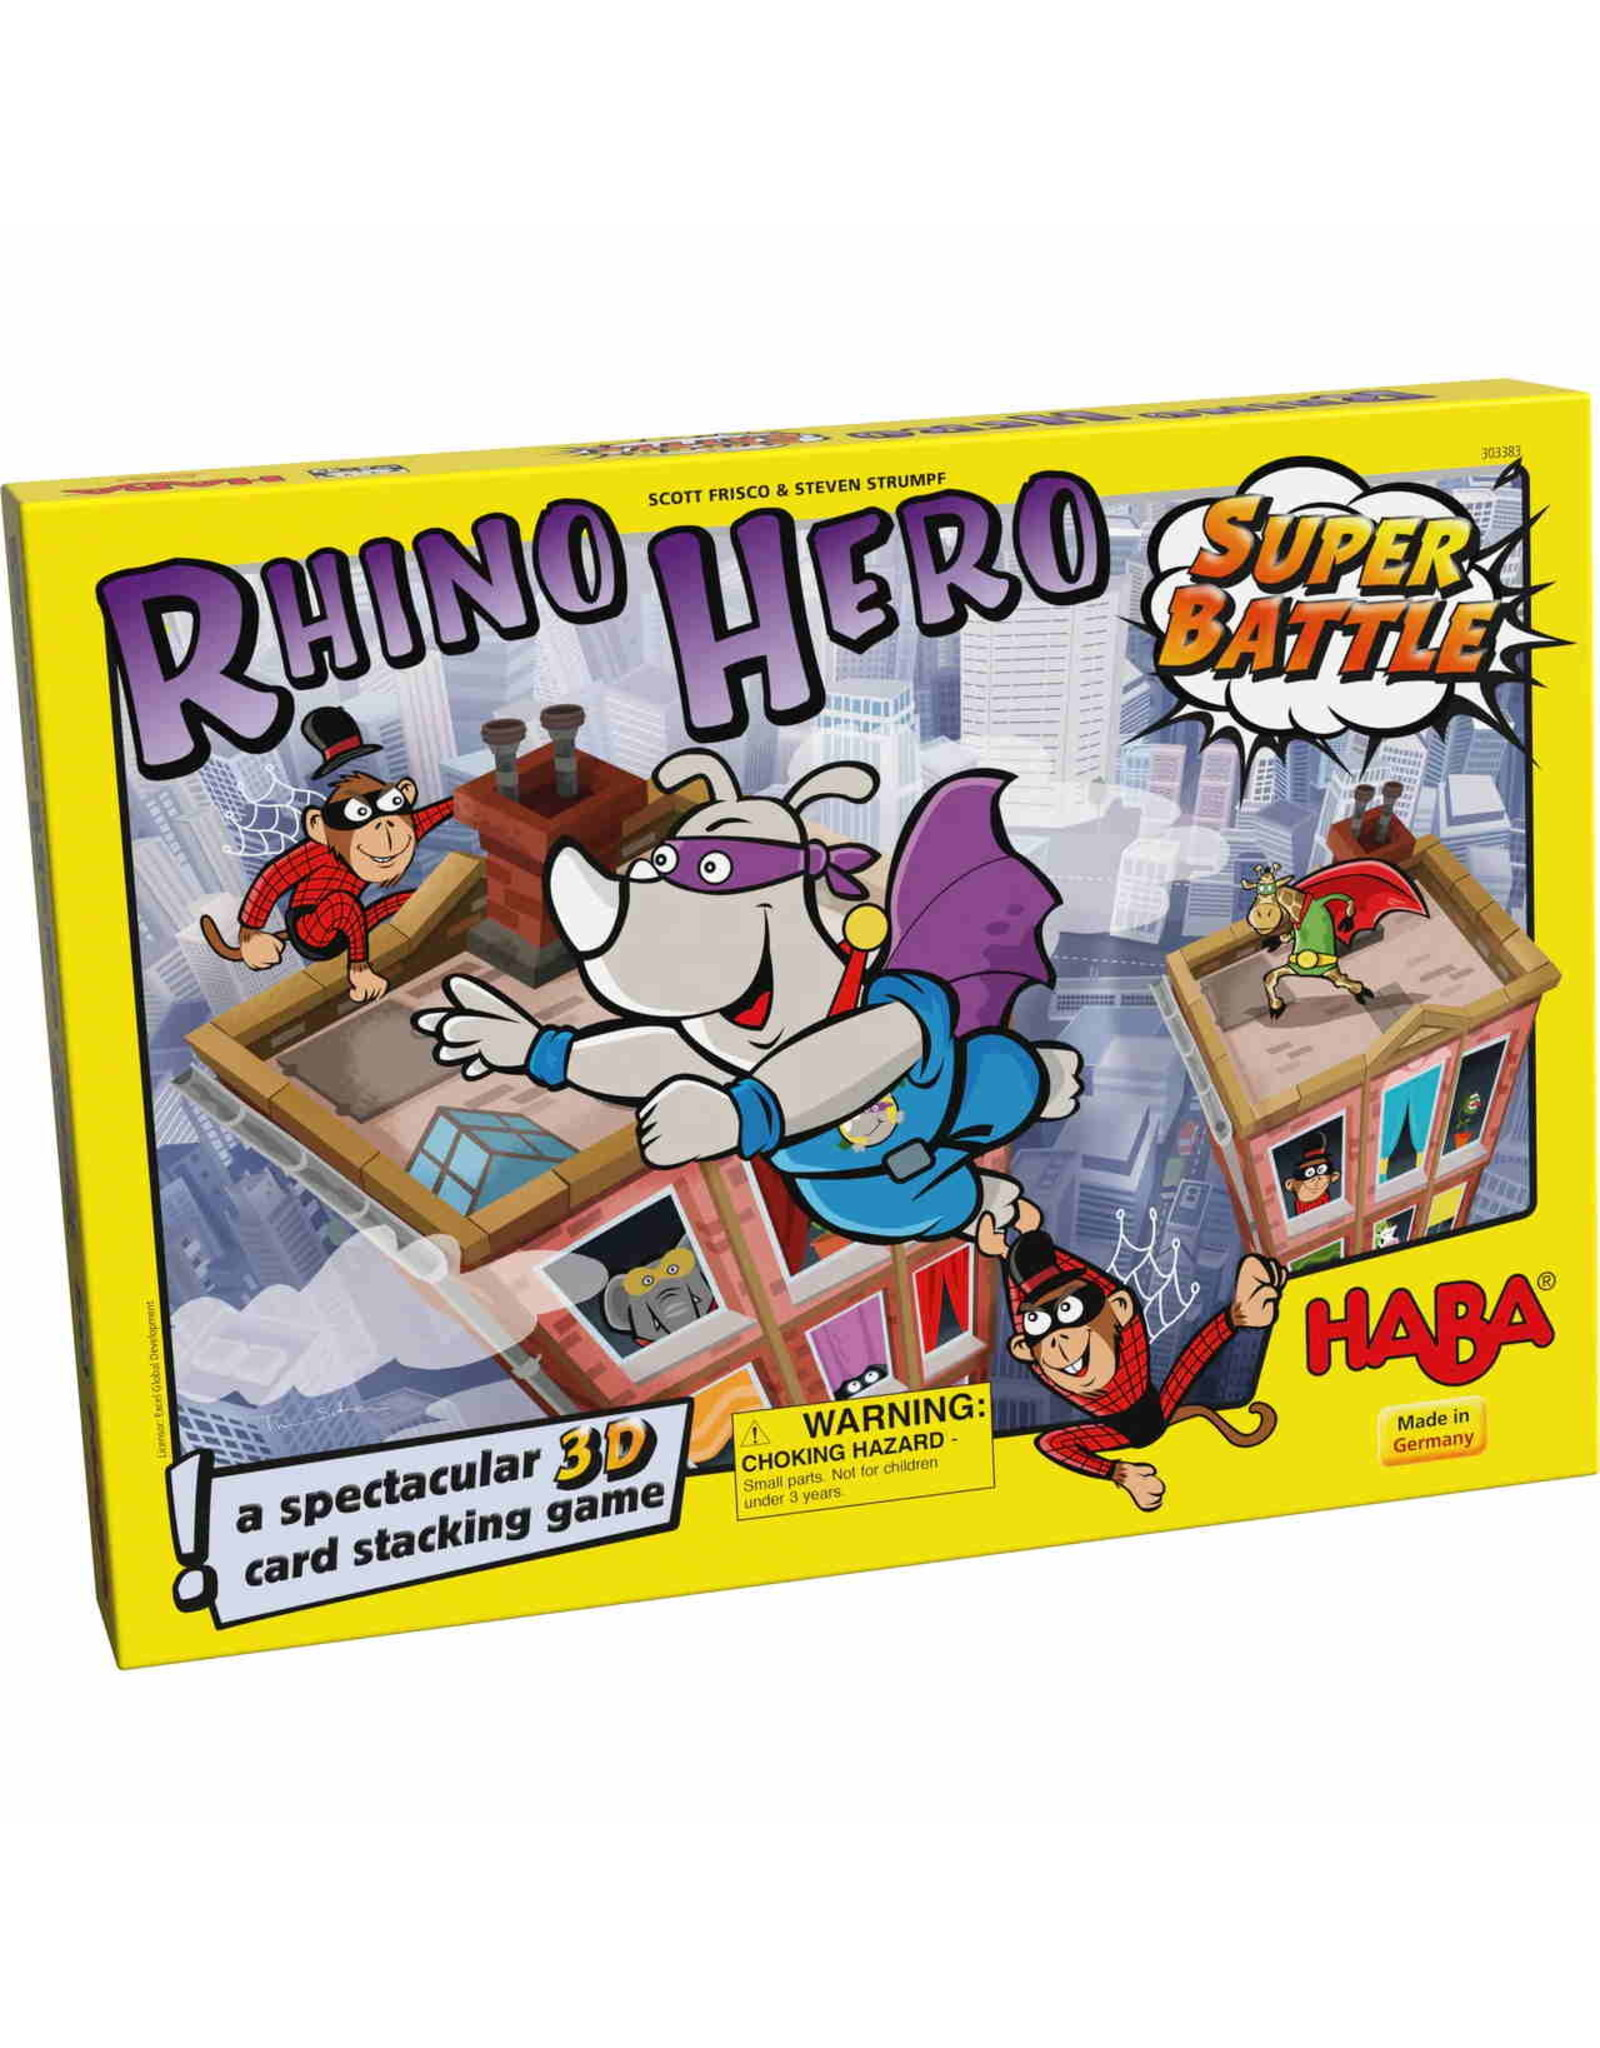 HABA GAMES RHINO HERO SUPER BATTLE